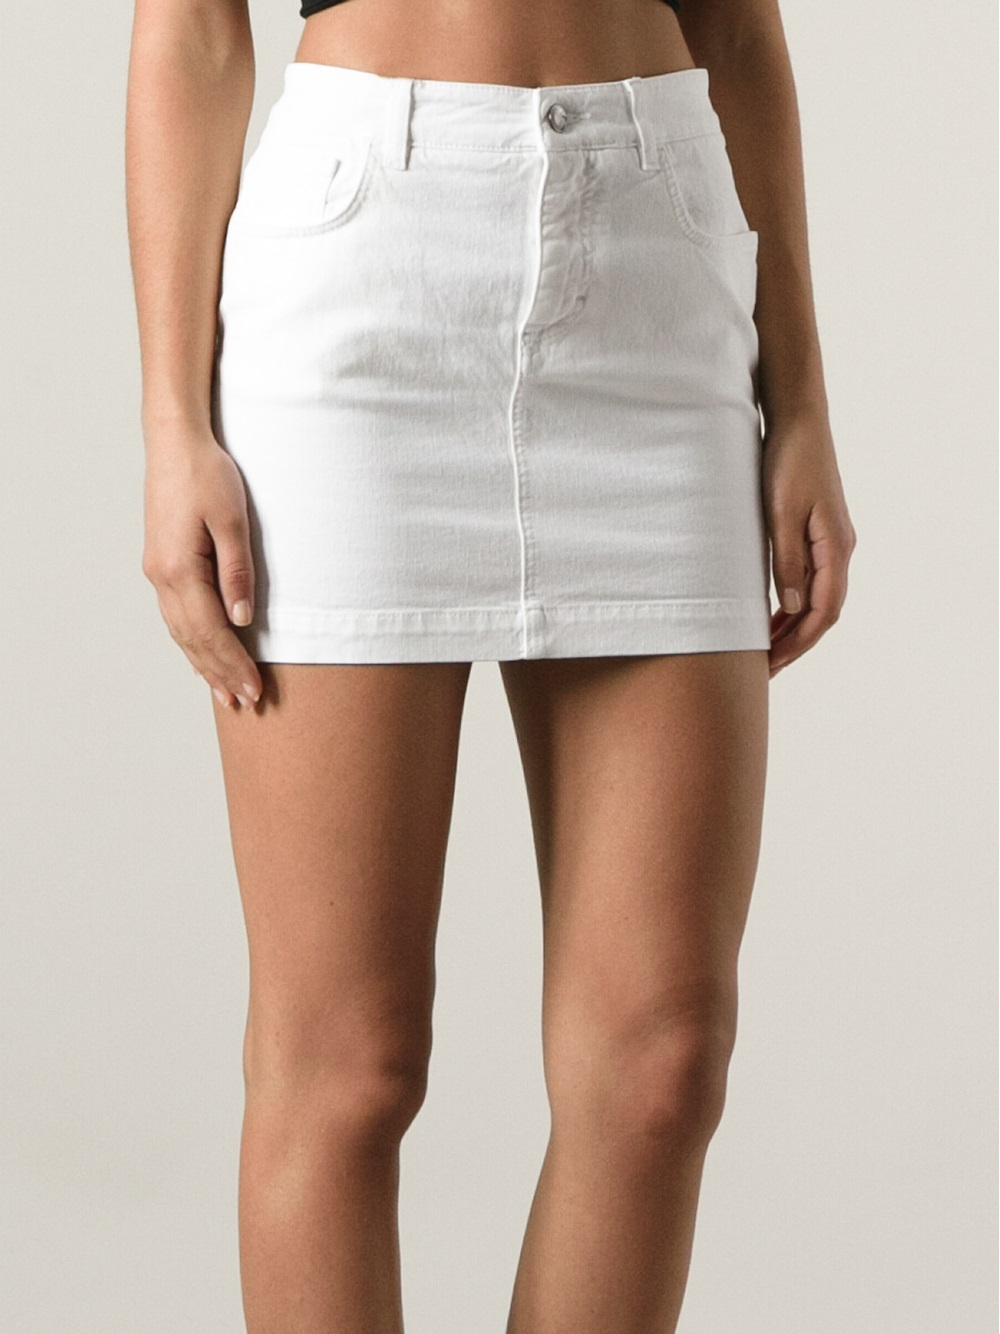 Dolce & gabbana Jeans Skirt in White | Lyst